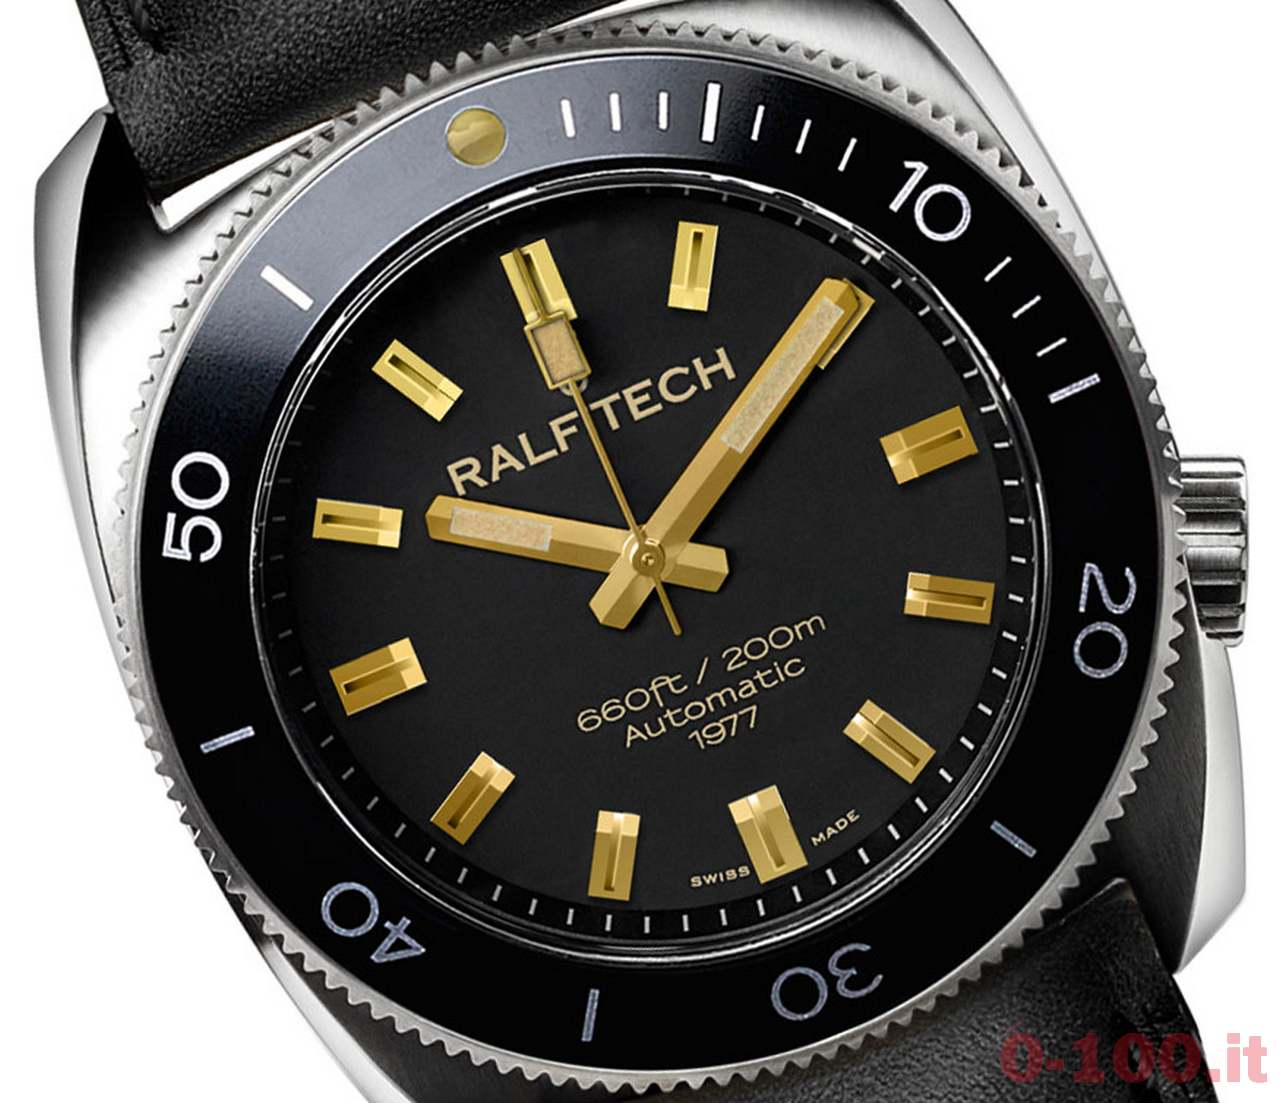 ralf-tech-wrv-v-automatic-1977-parisienne-ref-wrv-2204-limited-edition-prezzo-price_0-1002